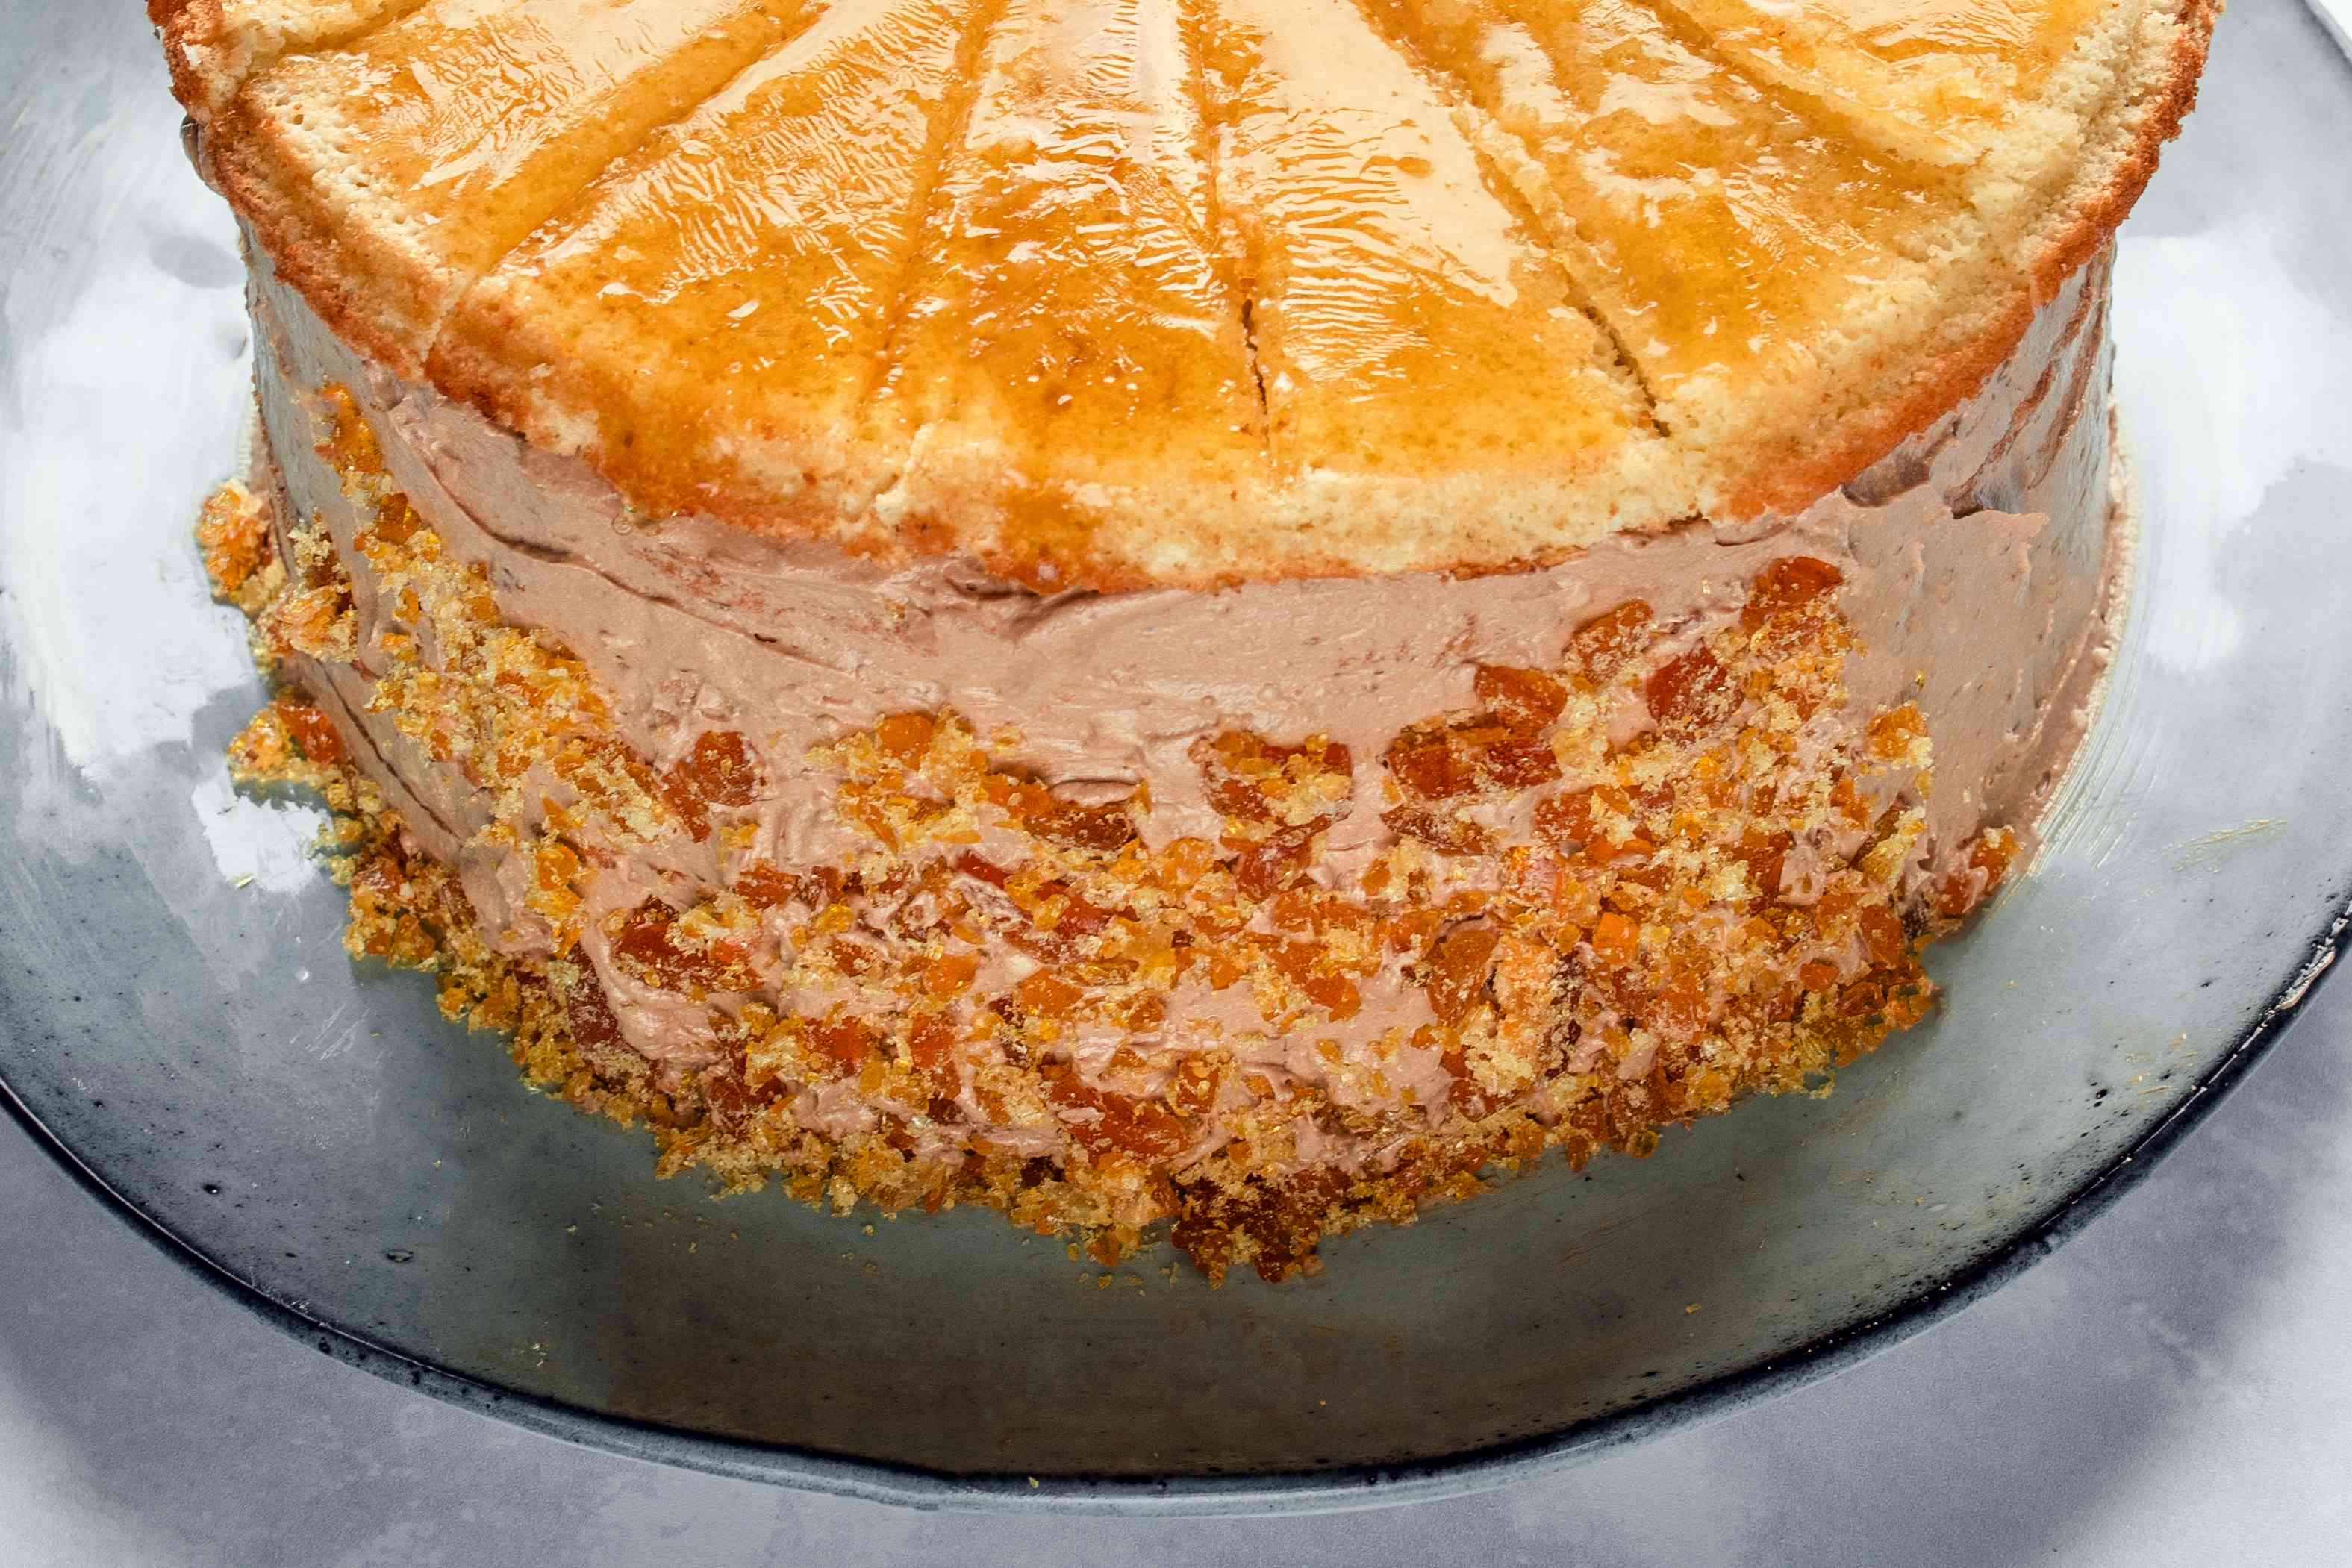 Sides of the torte decorated with nuts